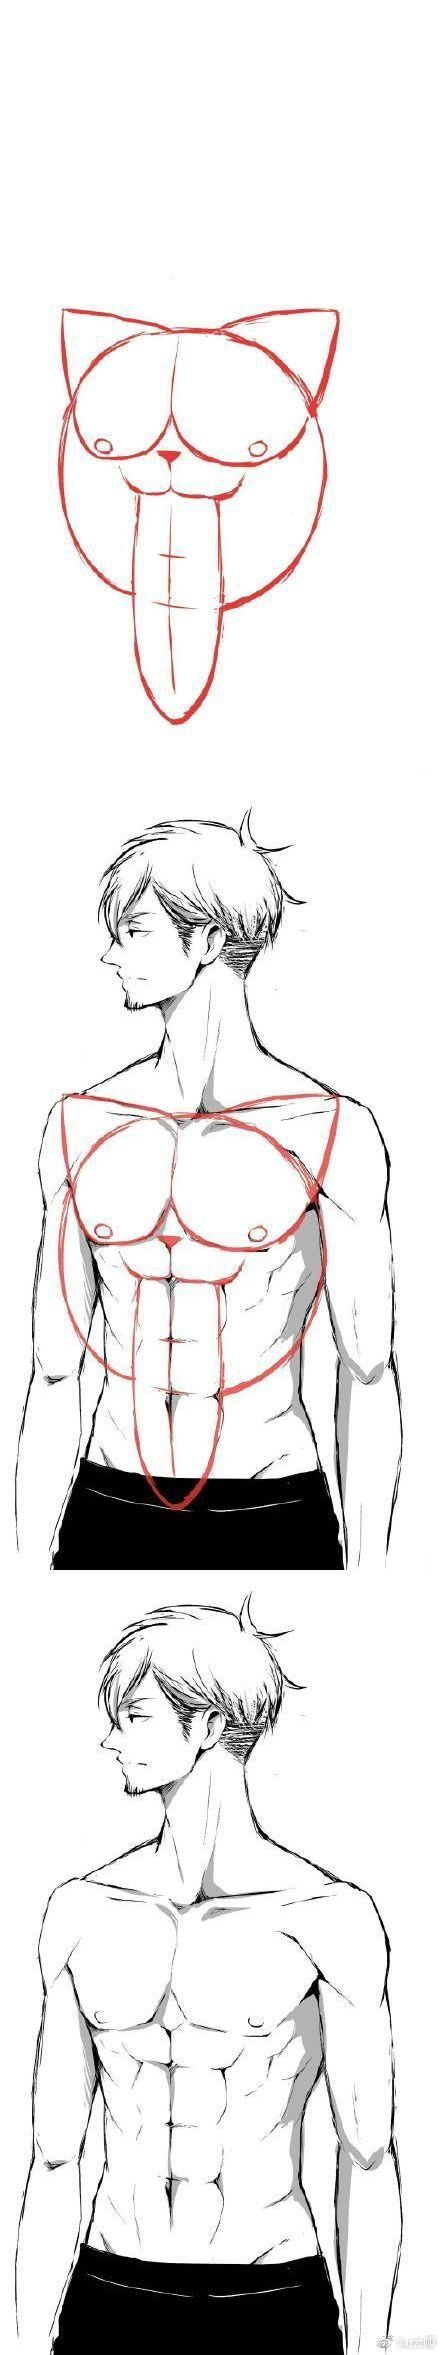 Well, that's... one way to draw abs.